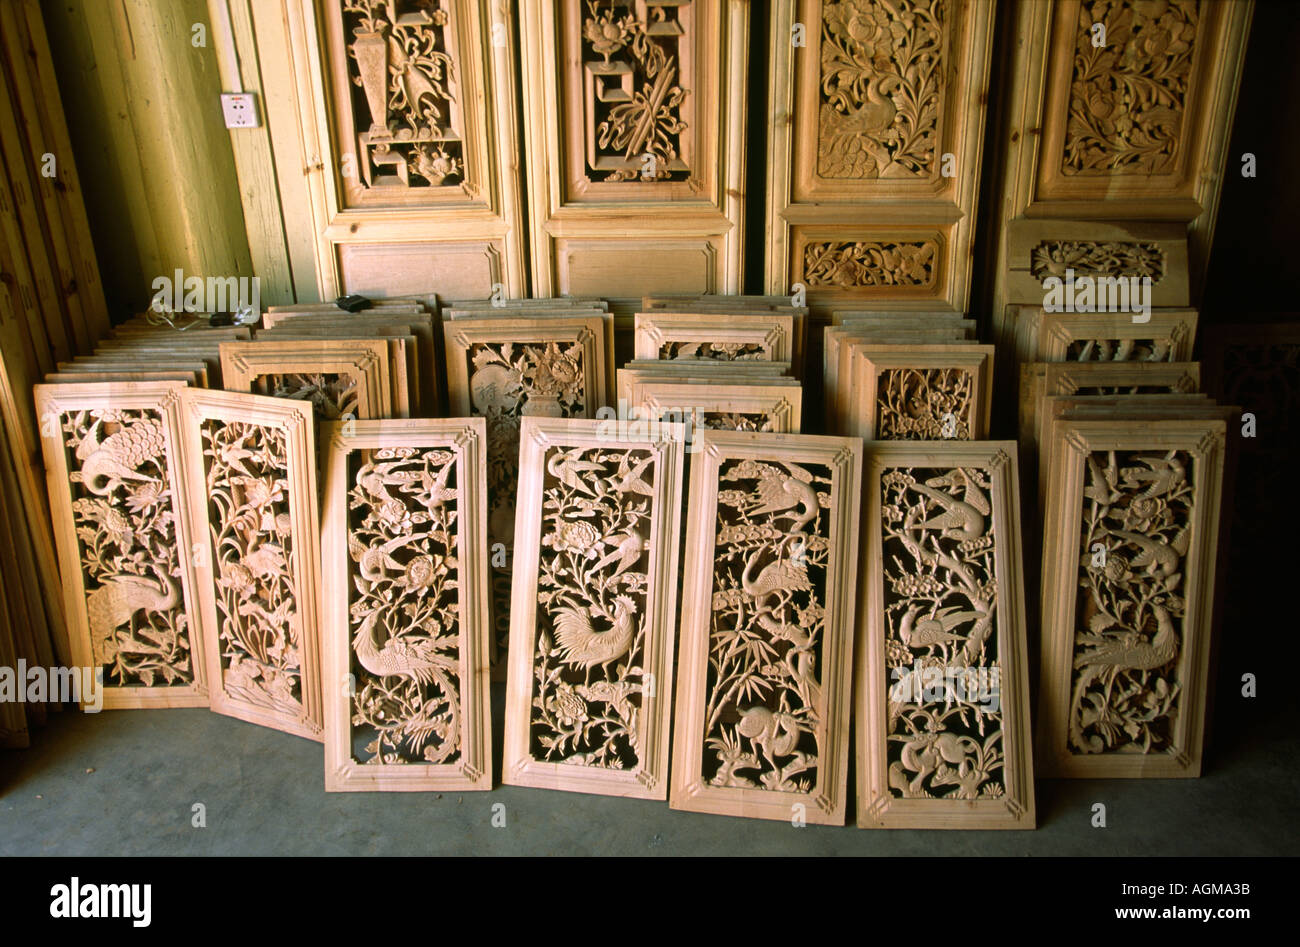 China yunnan lijiang old town carved wooden door panels